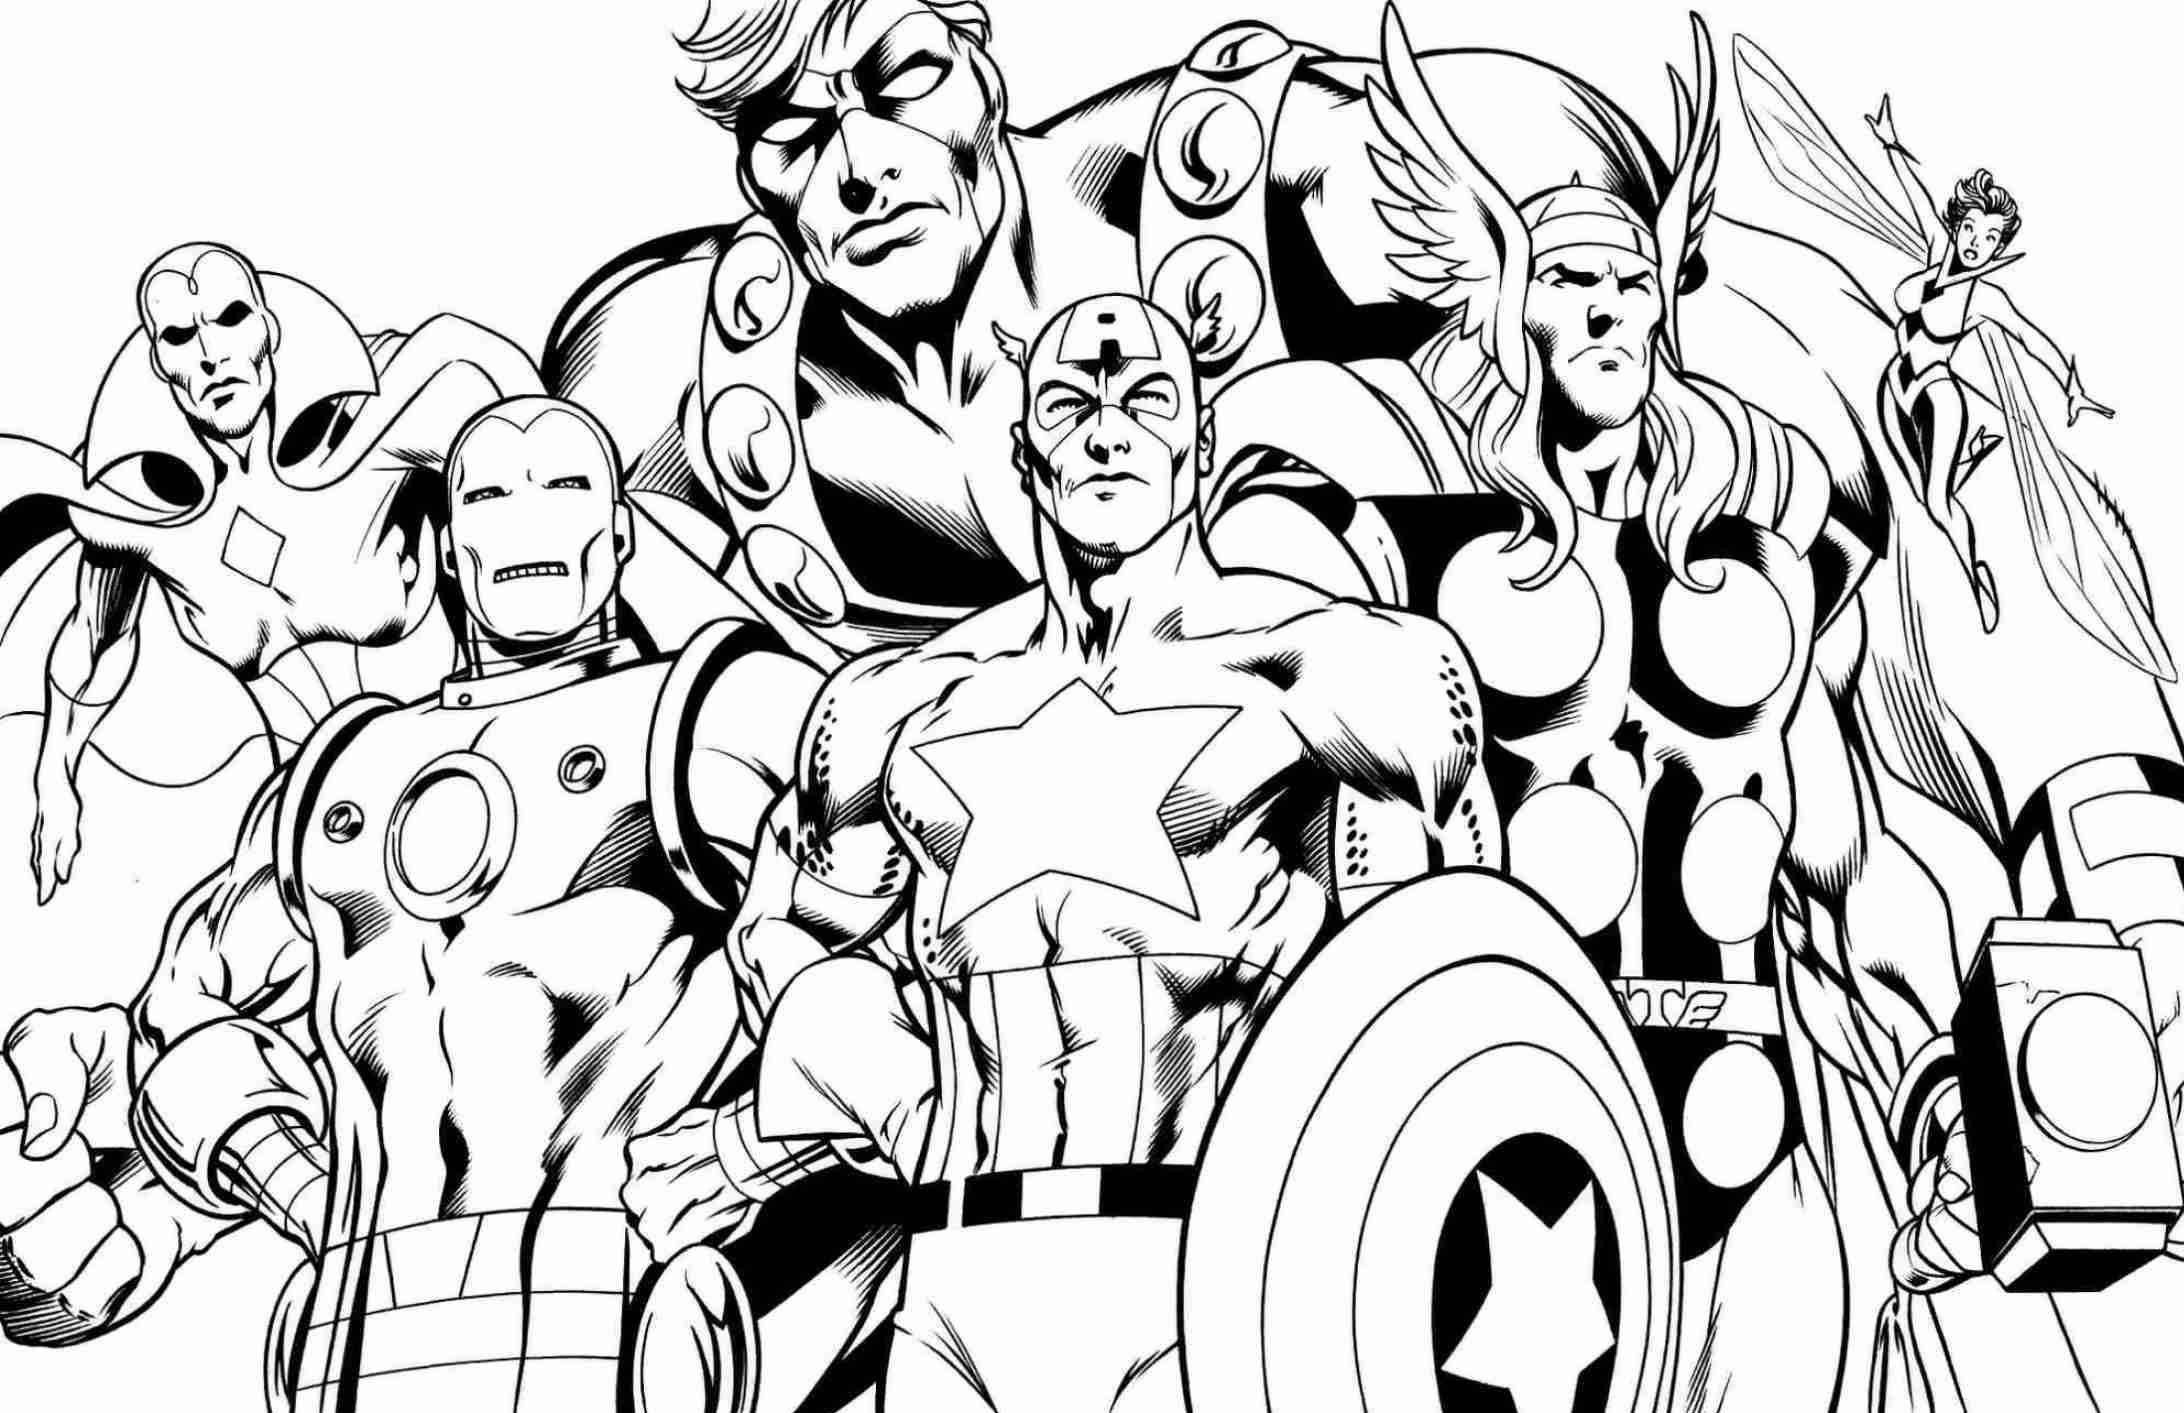 Super Heroes Coloring Page Superhero Coloring Pages Best Coloring Pages for Kids